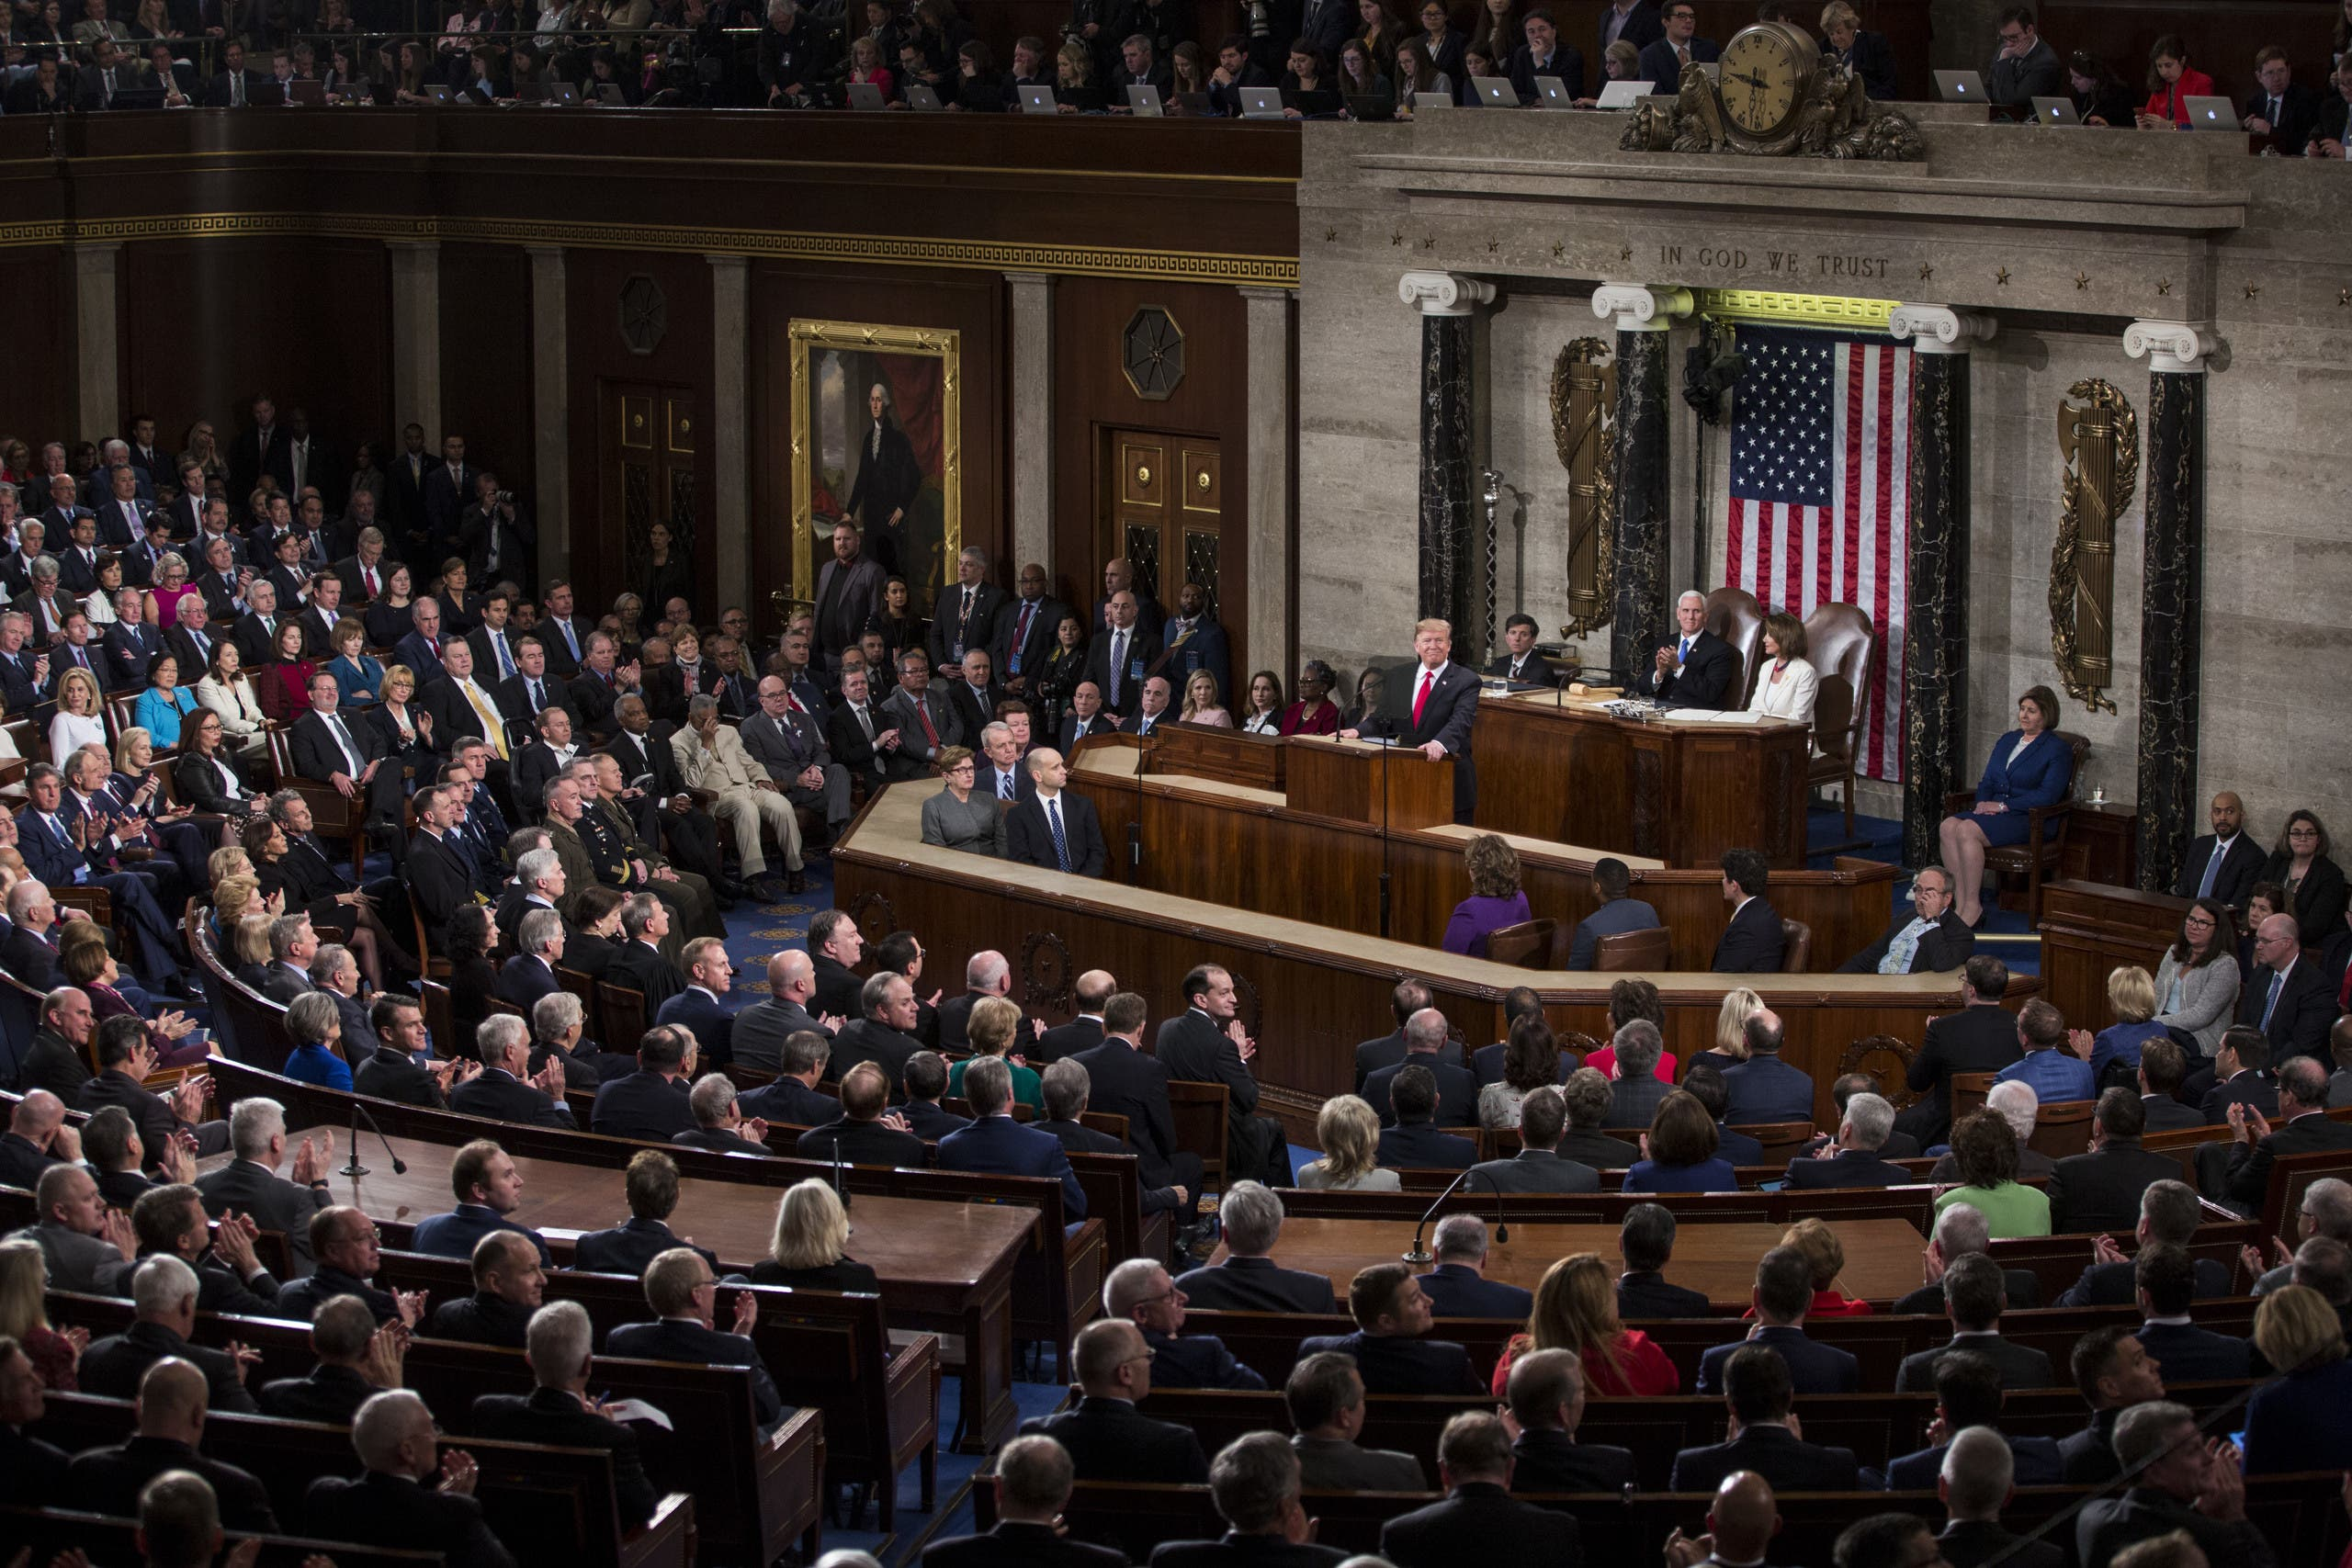 Donald Trump delivers the State of the Union address in the chamber of the US House of Representatives at the U.S. Capitol Building on February 2019  Washington AFP